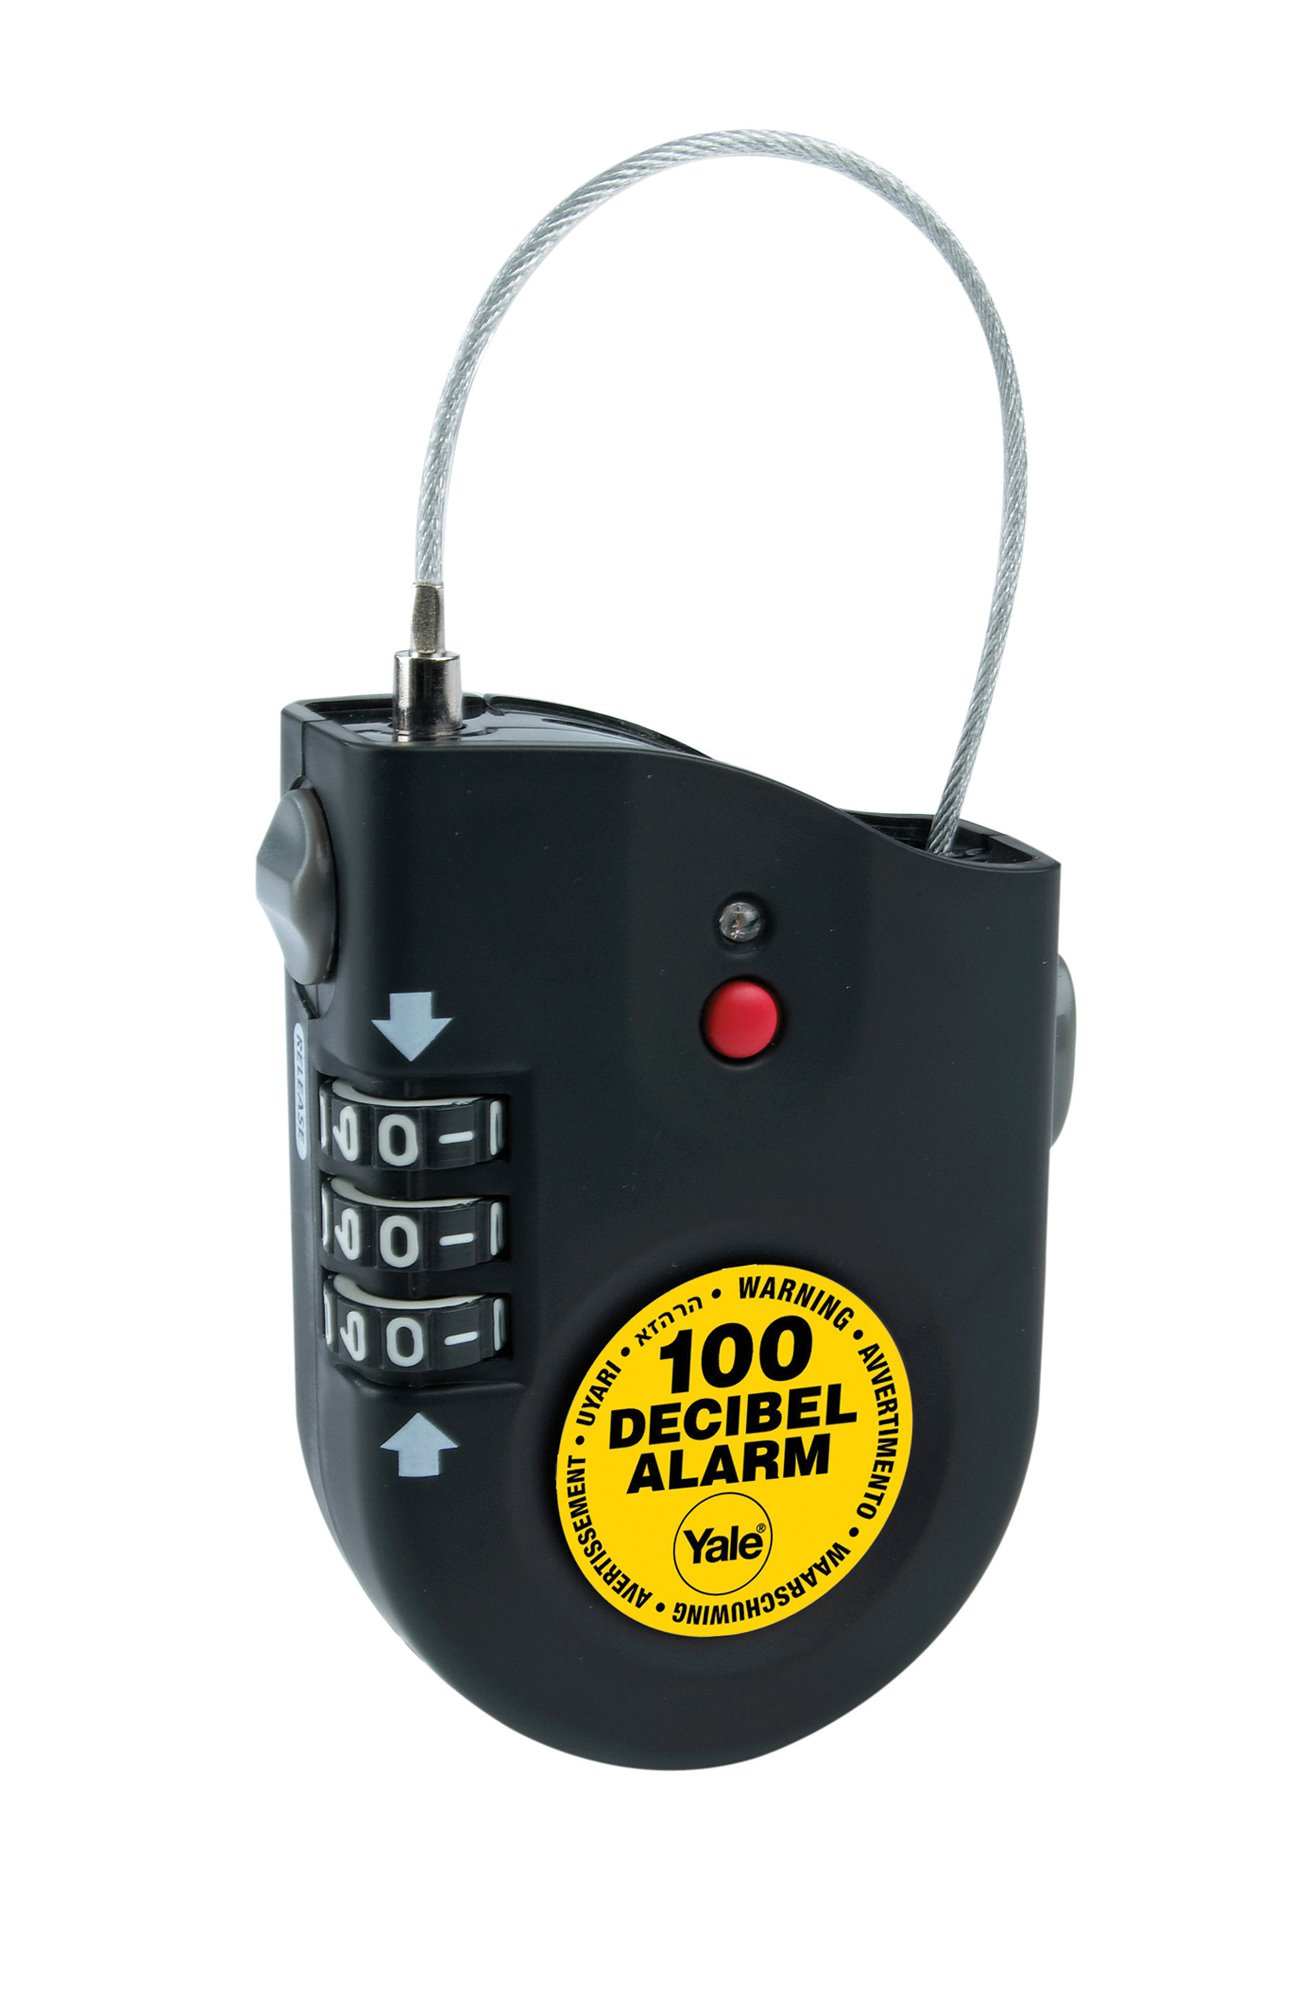 YCL1/2/ALARM - Lock Alarm Mini